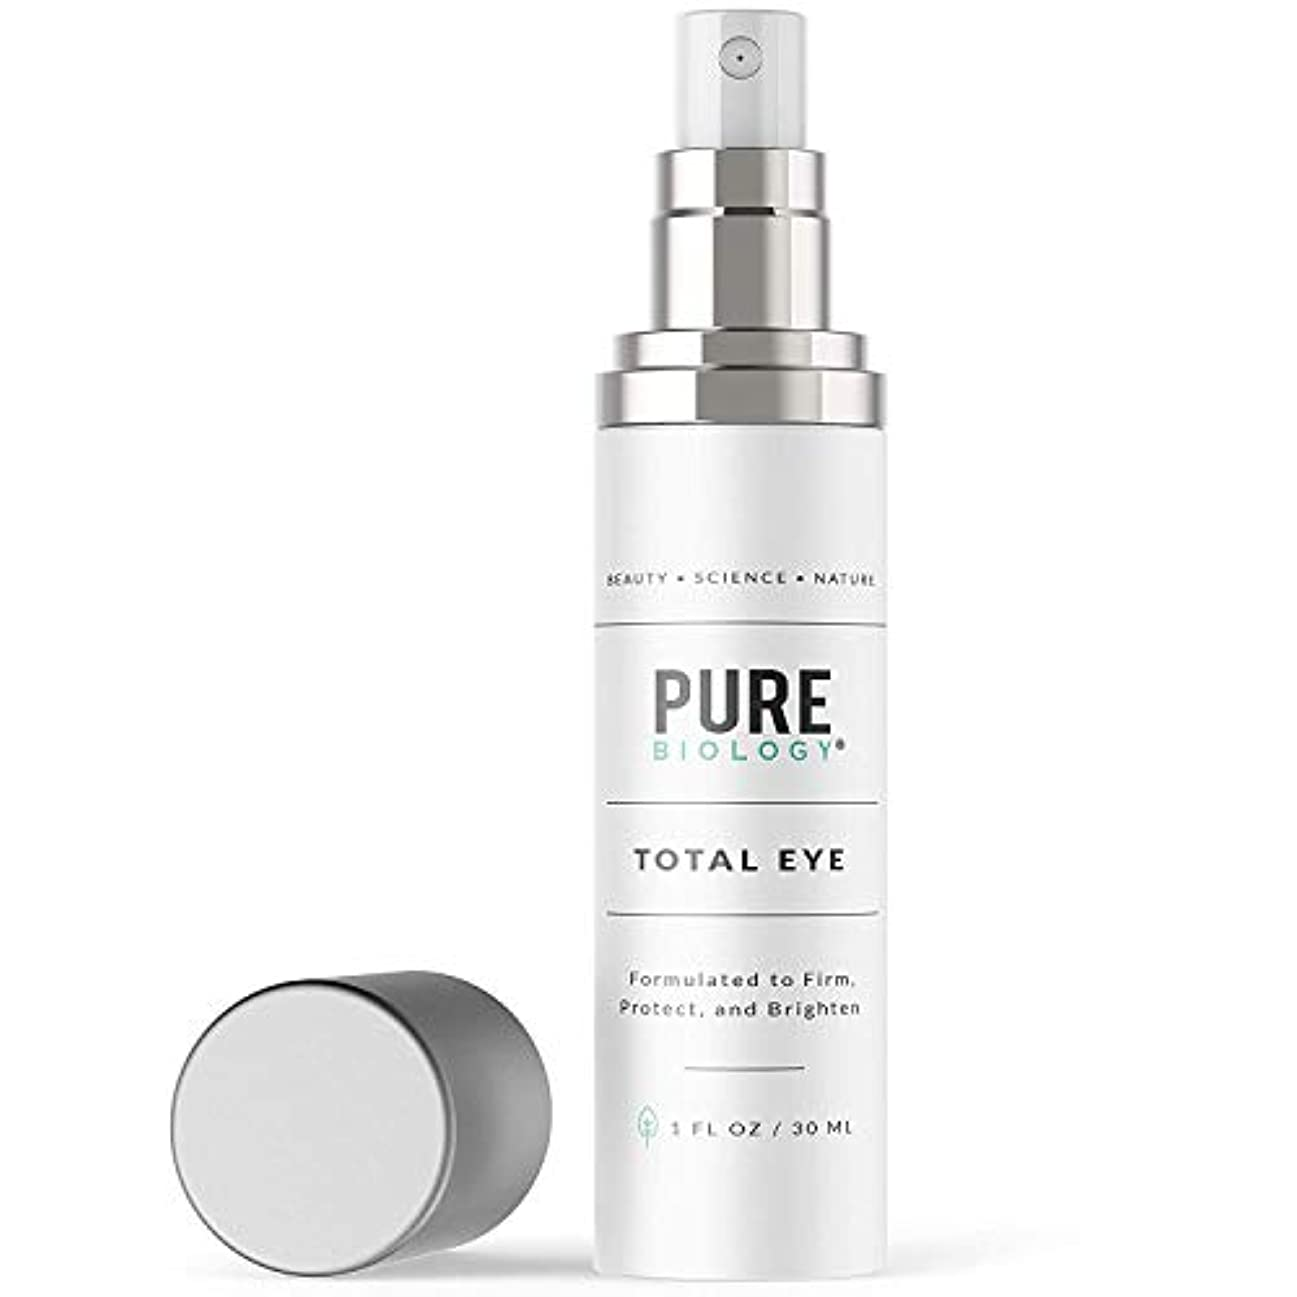 昇進キャンパス誰が[Pure Biology] [アイクリームTotal Eye Cream with Vitamin C + E, Hyaluronic Acid & Anti Aging Complexes to Reduce Dark Circles, Puffiness, Under Eye Bags, Wrinkles & Fine Lines] (並行輸入品)